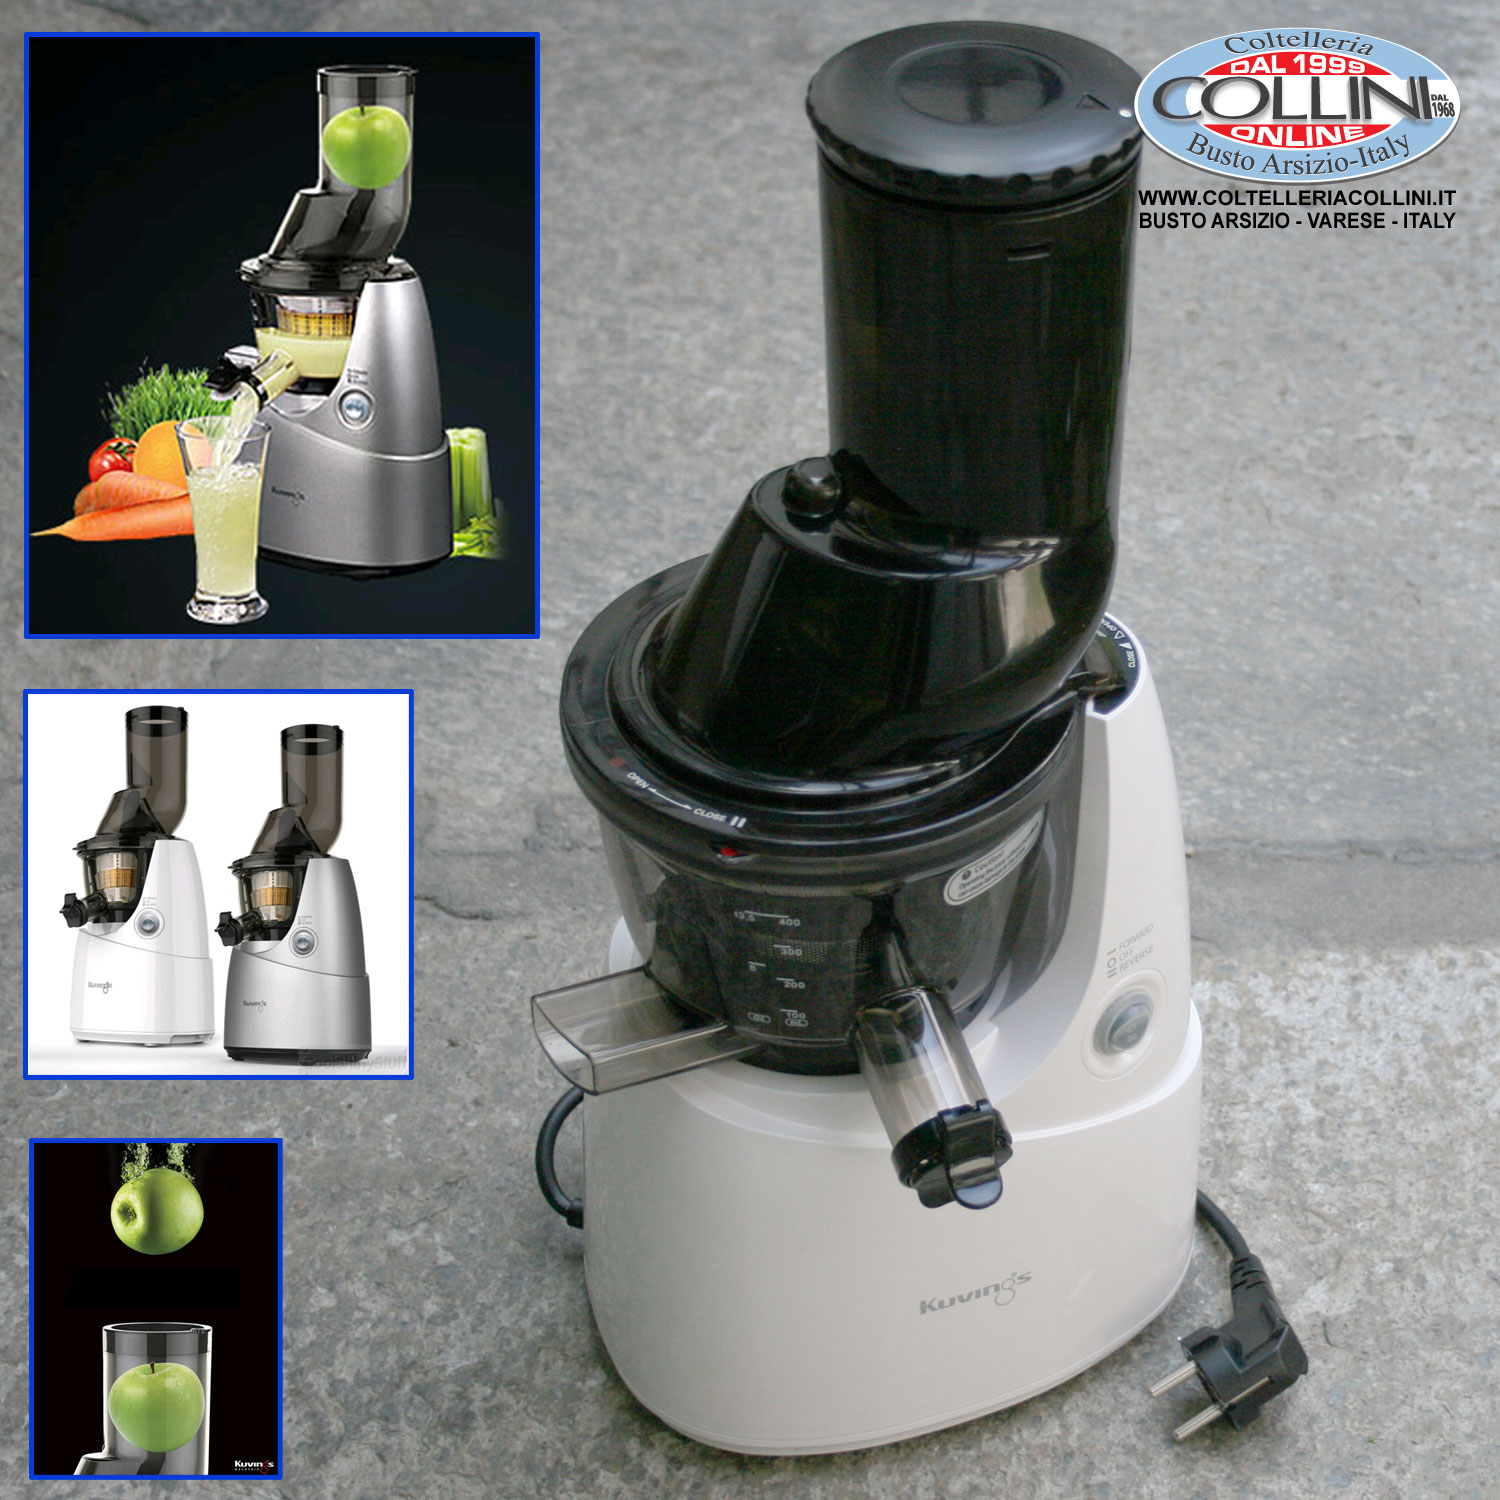 Kuvings - Kuvings Whole Slow Juicer B6000S - estrattore